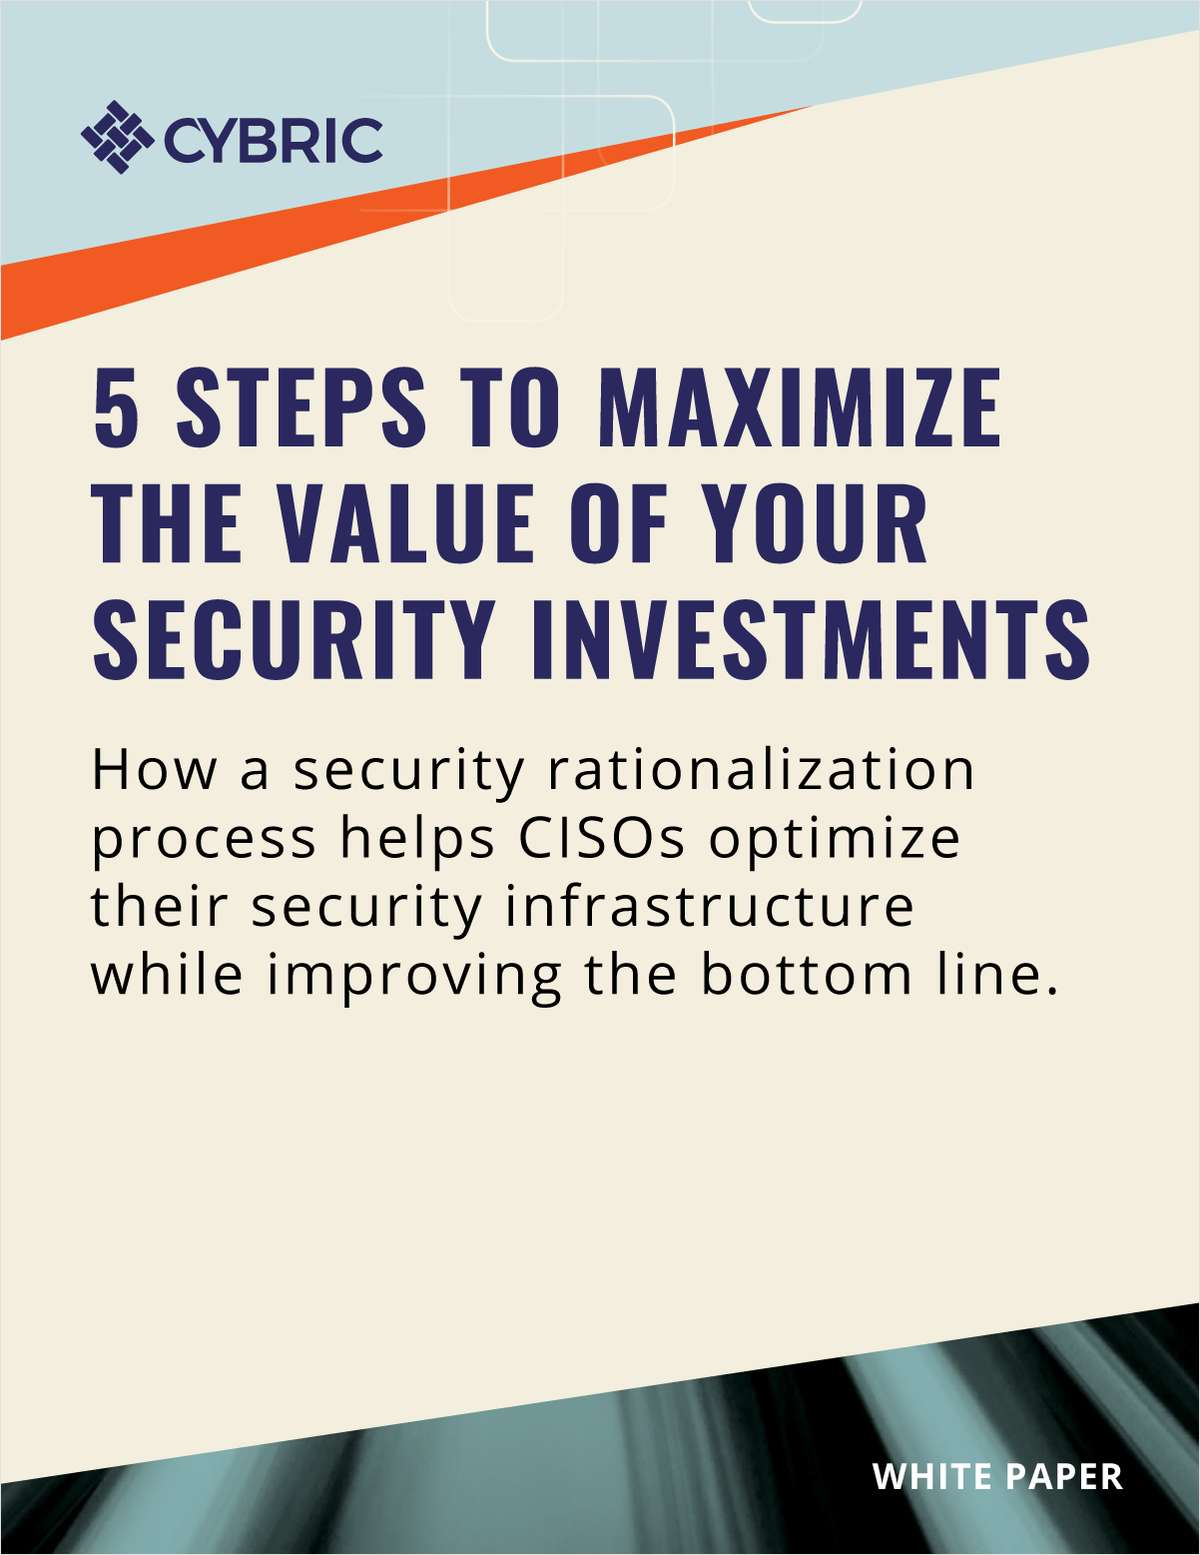 5 Steps to Maximize the Value of Your Security Investments